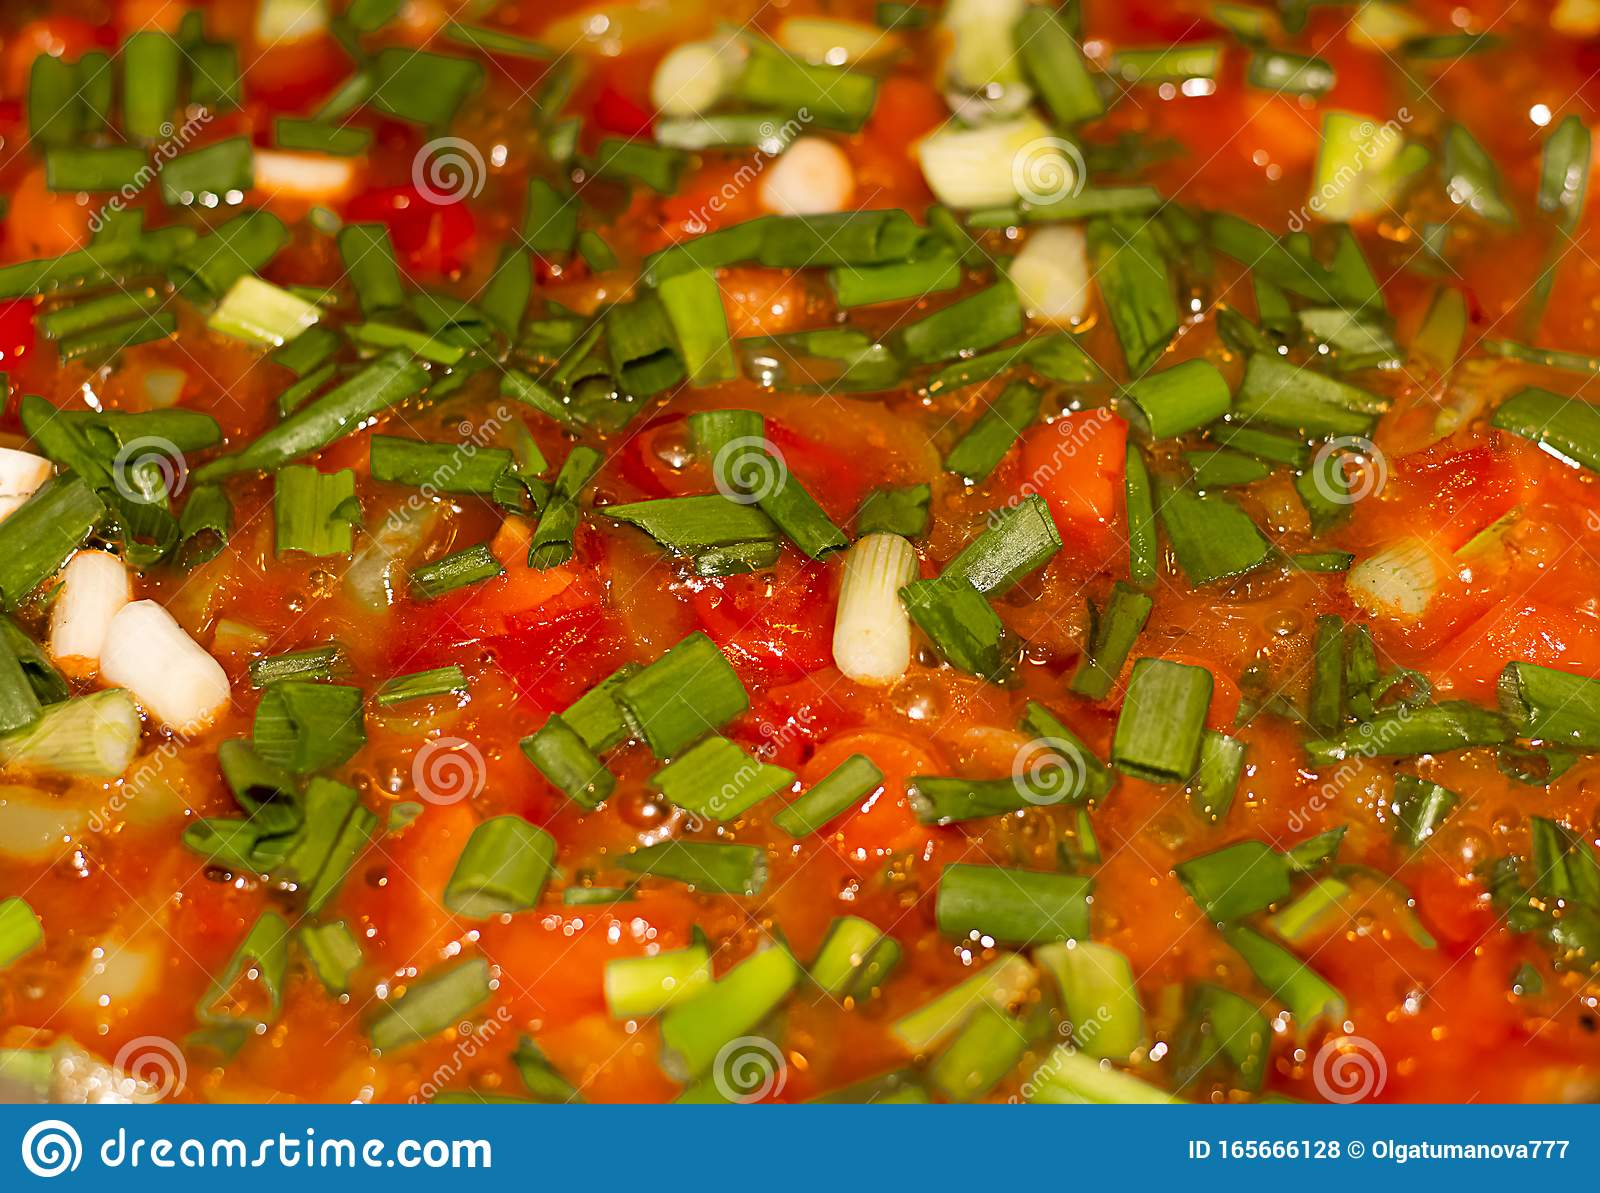 Mexican Sauce Salsa Ranchera Made With Onions Garlic Chilli Toasted Cumin Seeds Mexican Oregano Green Peppers And Tomatoes Stock Photo Image Of Chili Cuisine 165666128